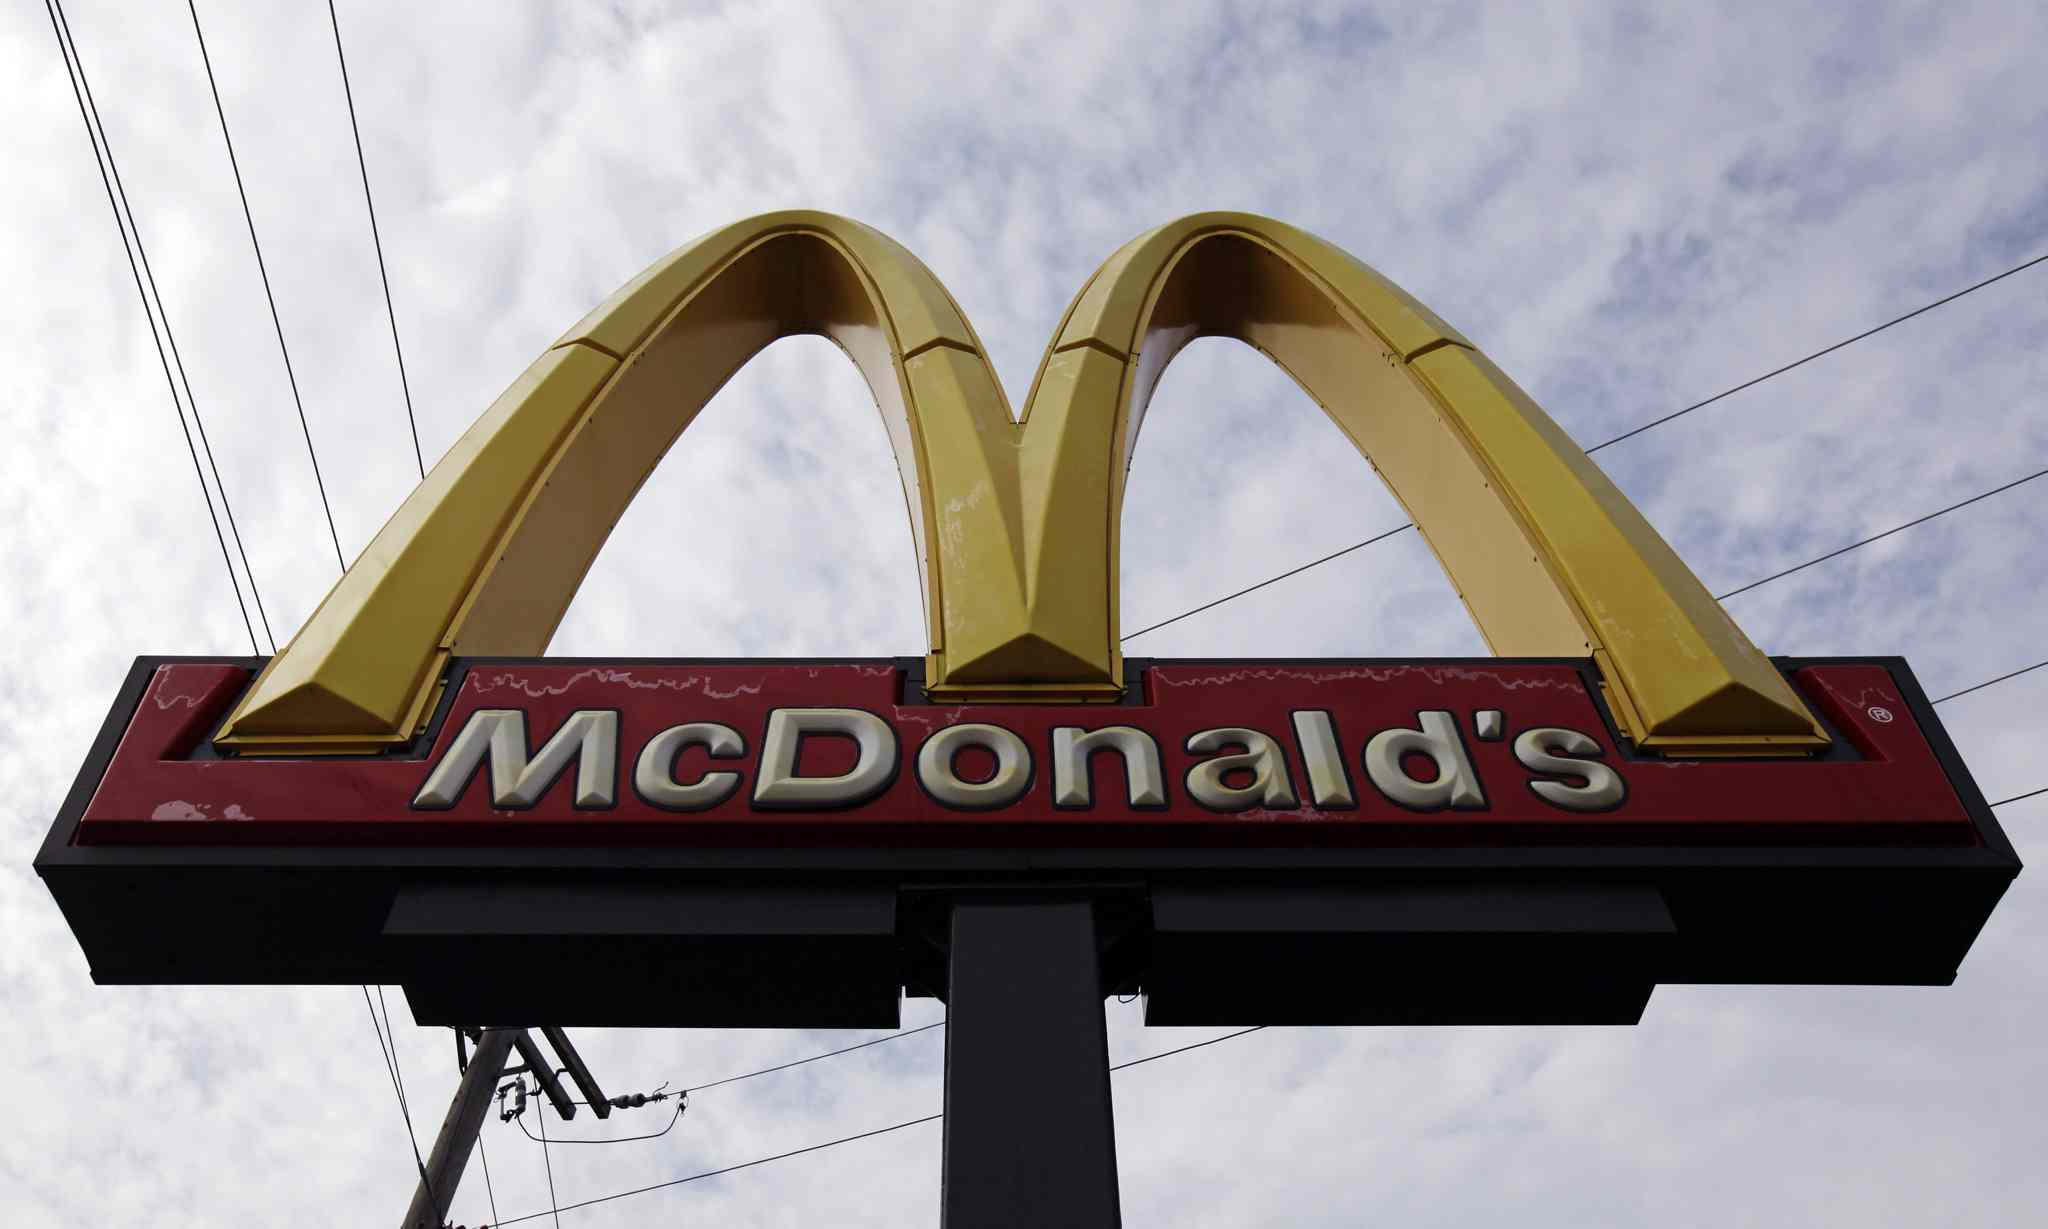 This Friday, Oct. 4, 2013 file photo shows a McDonald's restaurant sign at a McDonald's restaurant in Chicago. The first McDonald's in Vietnam opened earlier this month, bringing in 40,000 customers during its first two days of business.